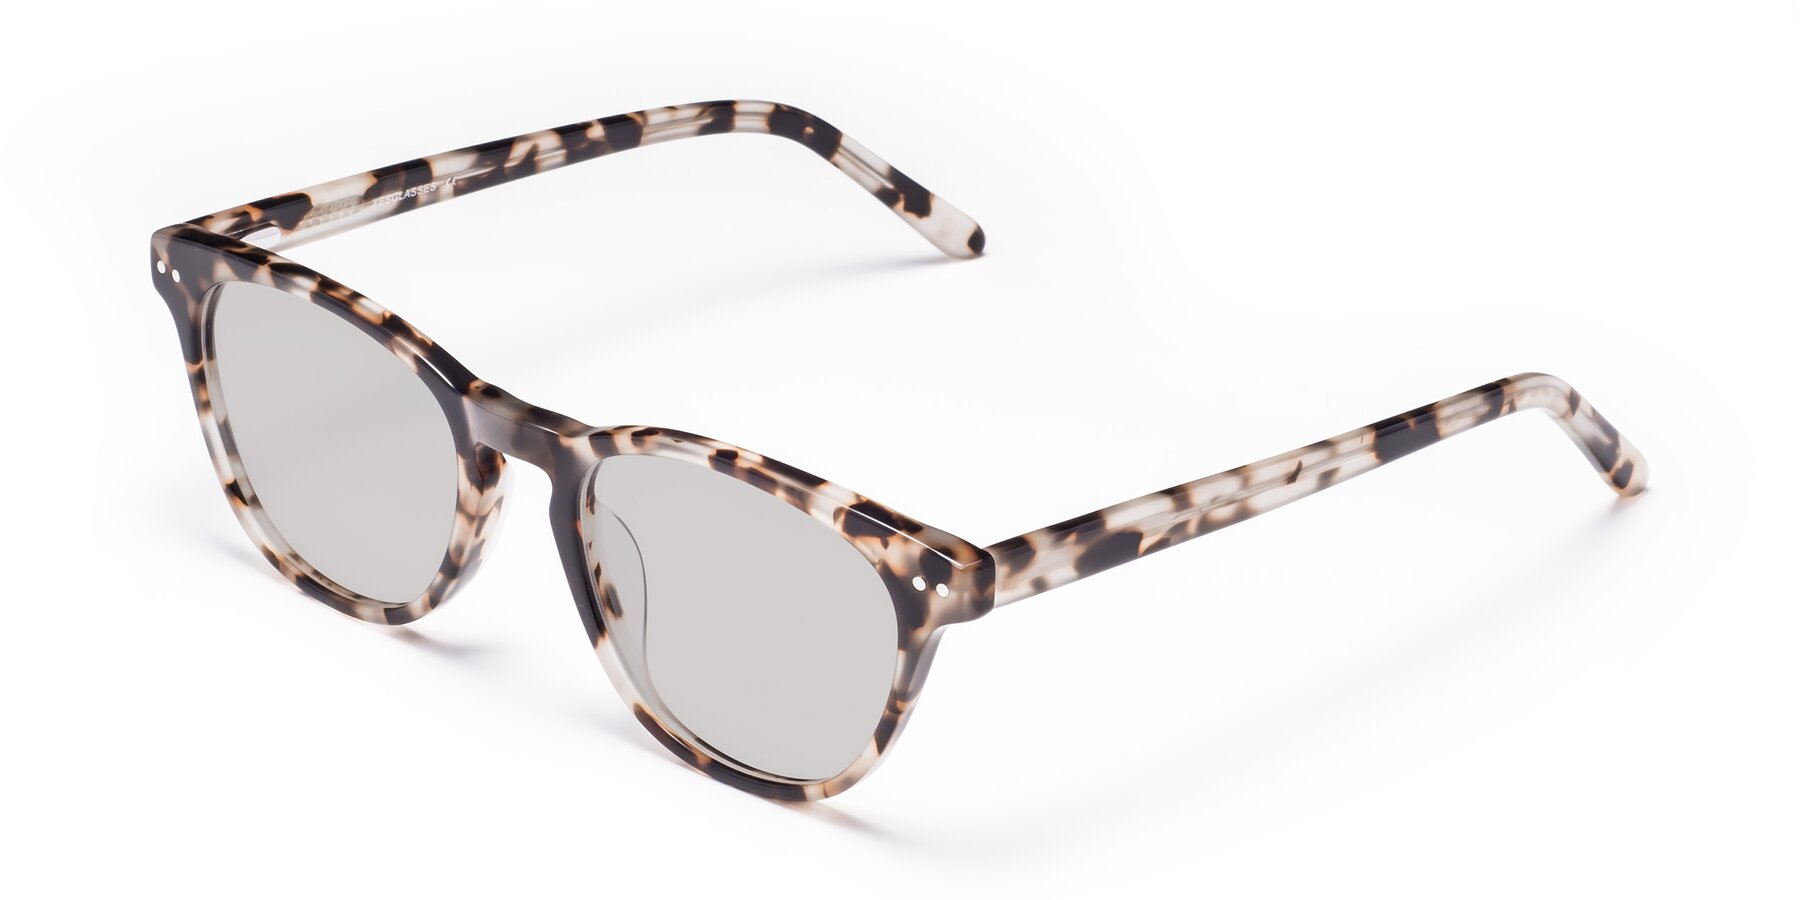 Angle of Blaze in Tortoise with Light Gray Tinted Lenses